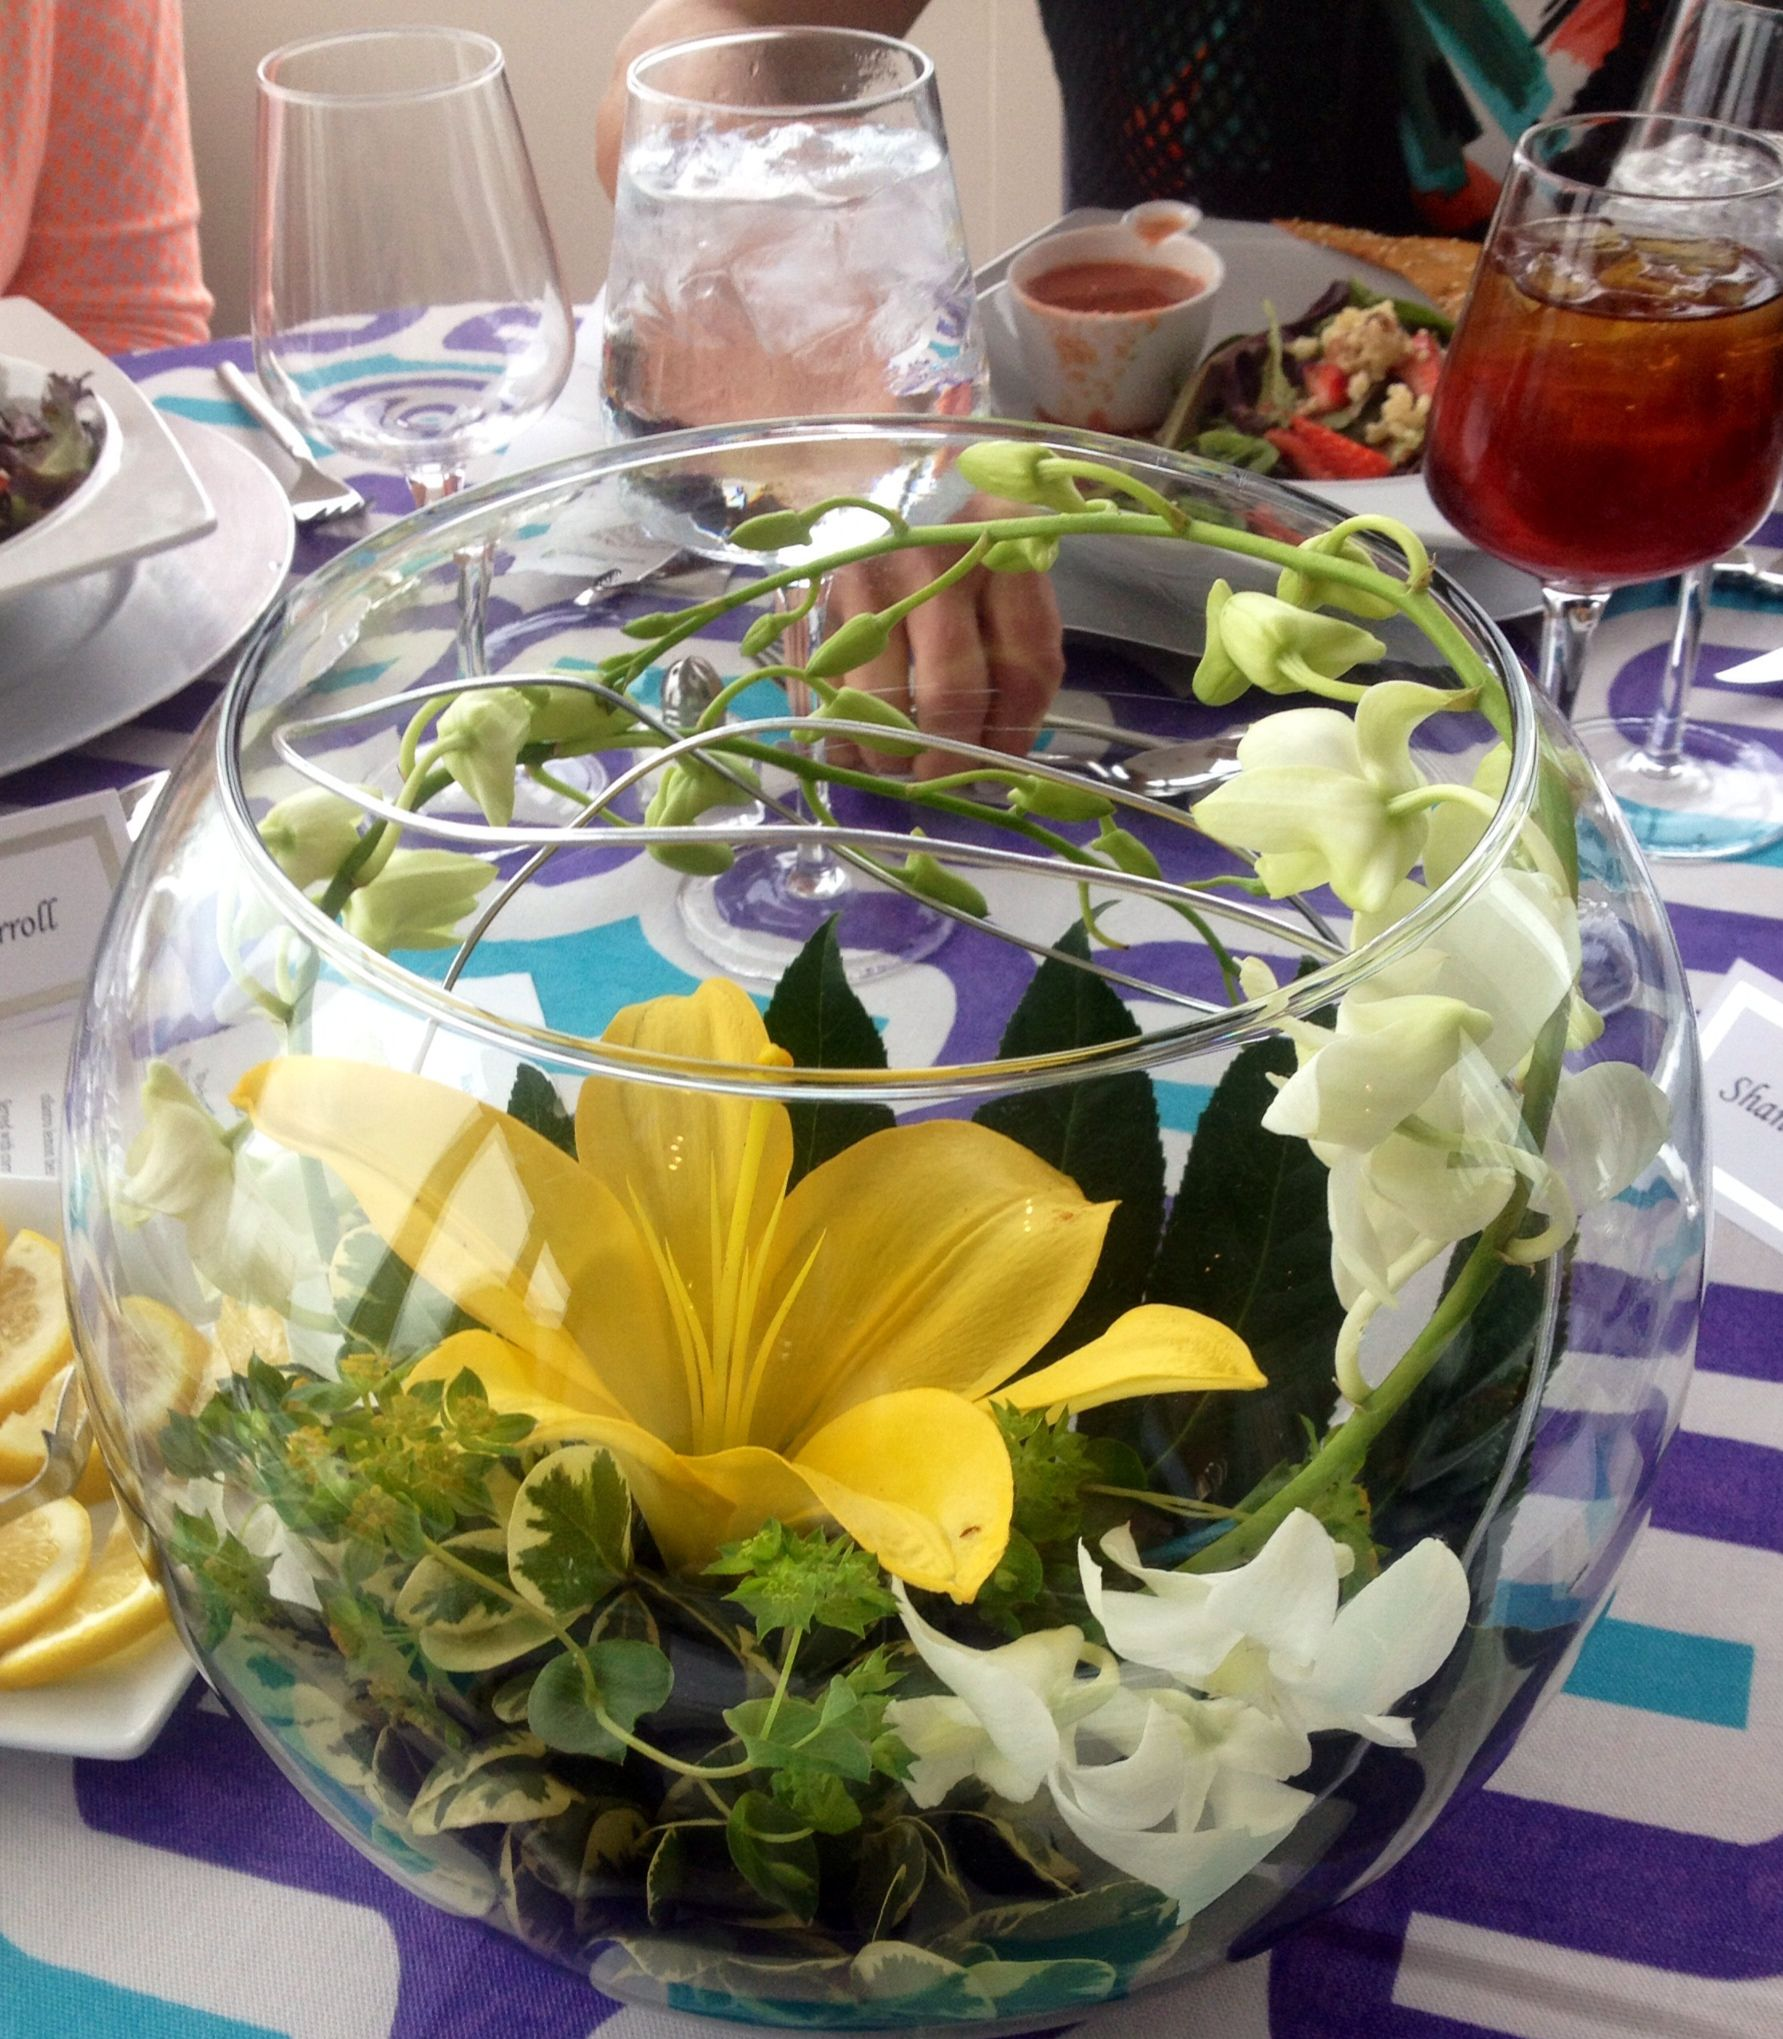 Simple yet beautiful centerpiece for a casual ladies